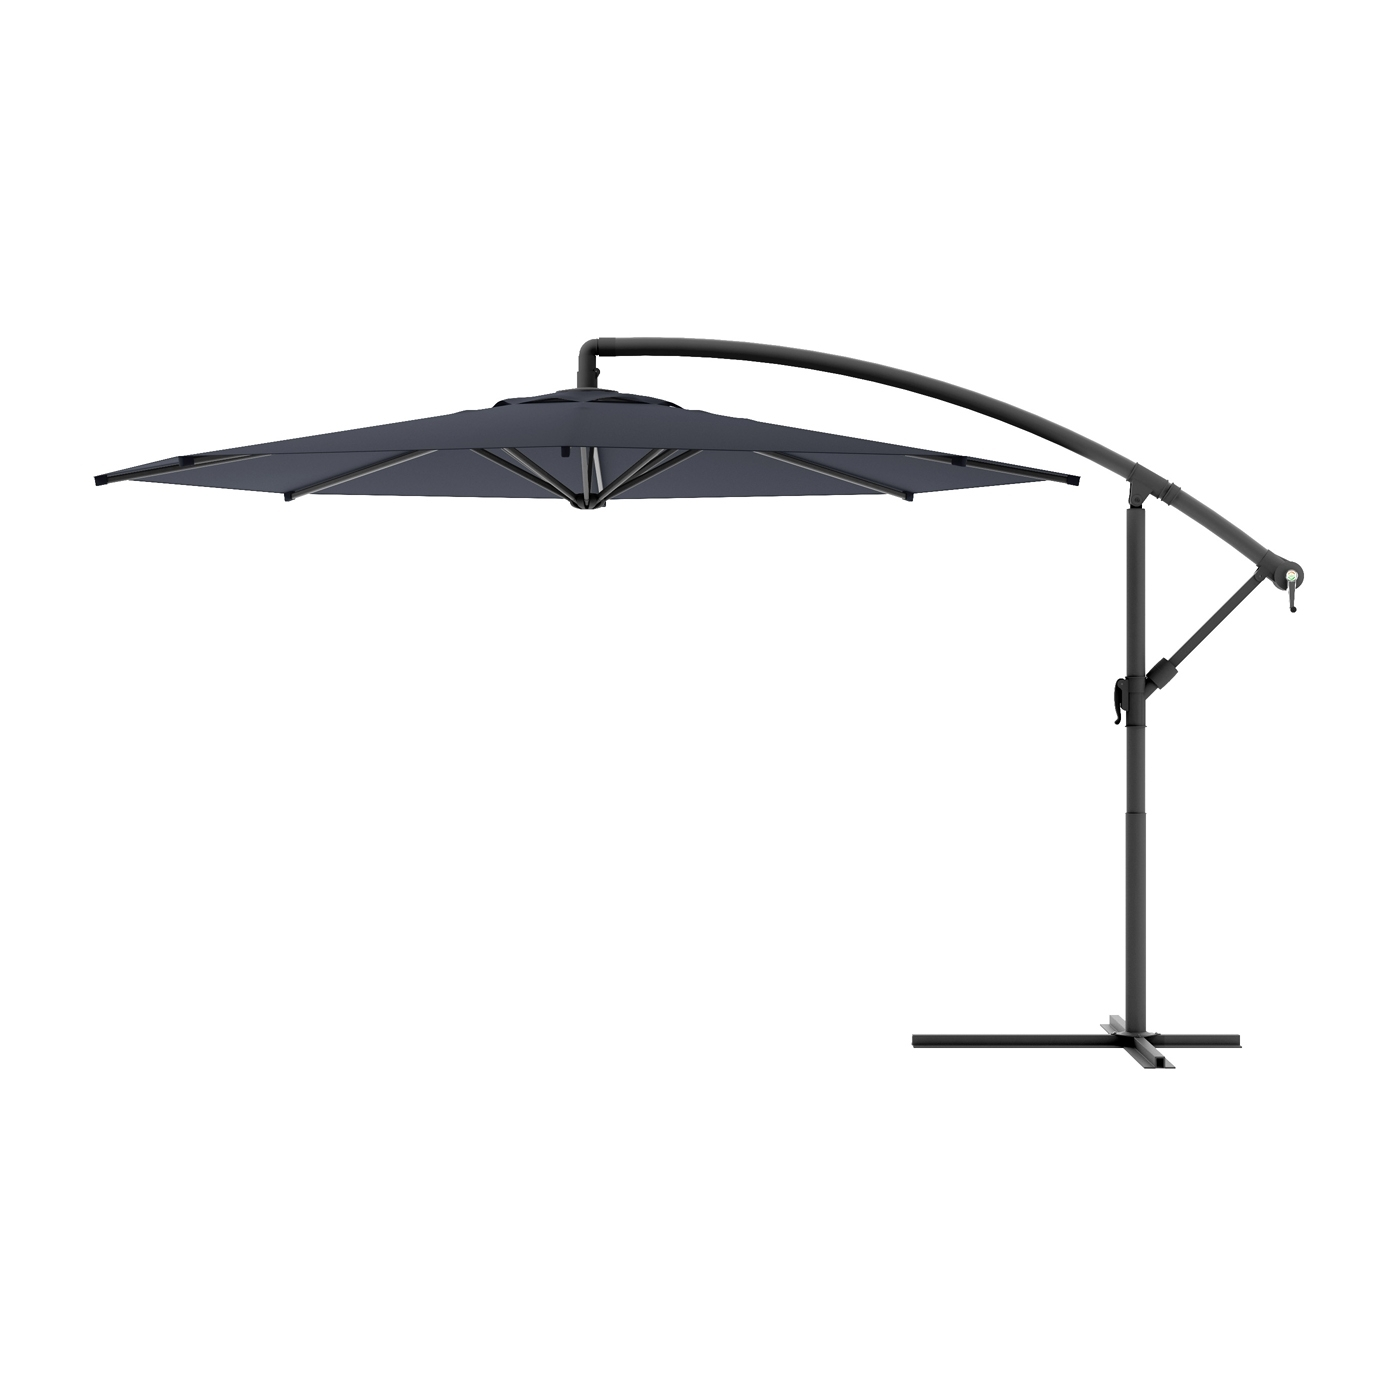 Lowes Offset Patio Umbrellas With Regard To Famous Corliving Ppu 4 Cantilever Patio Umbrella (View 3 of 20)